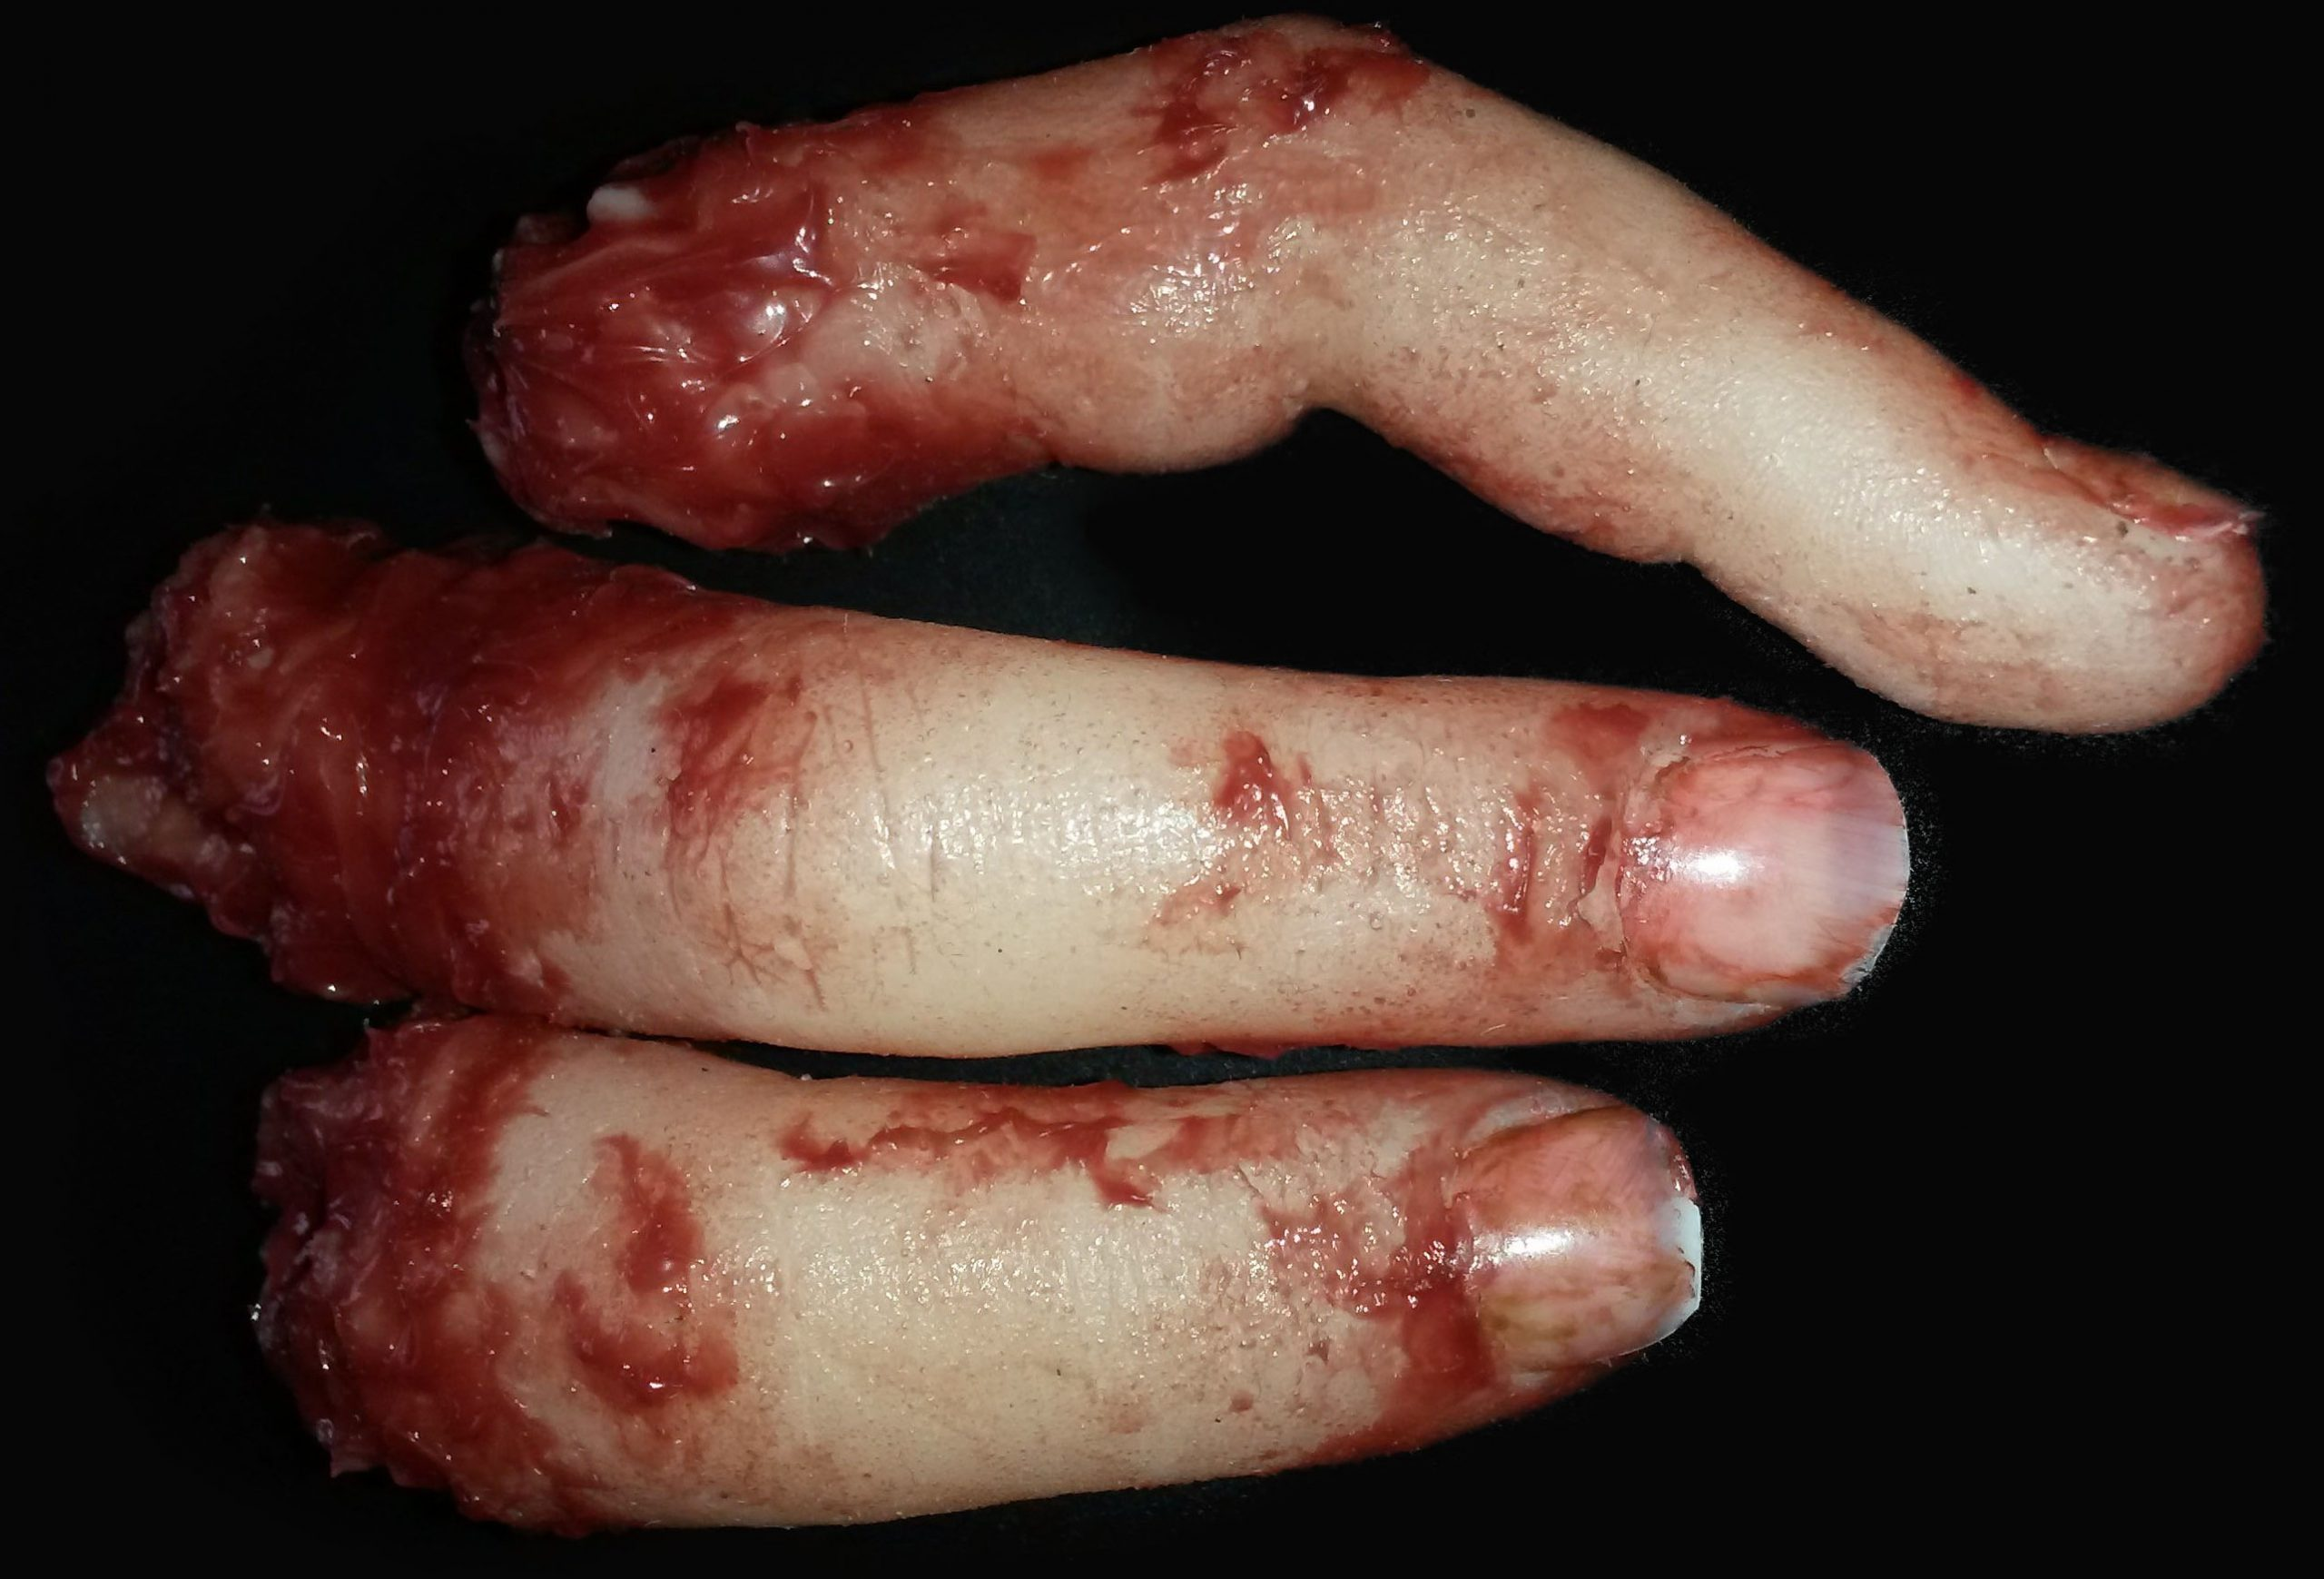 Finger (Specific digits may be requested)